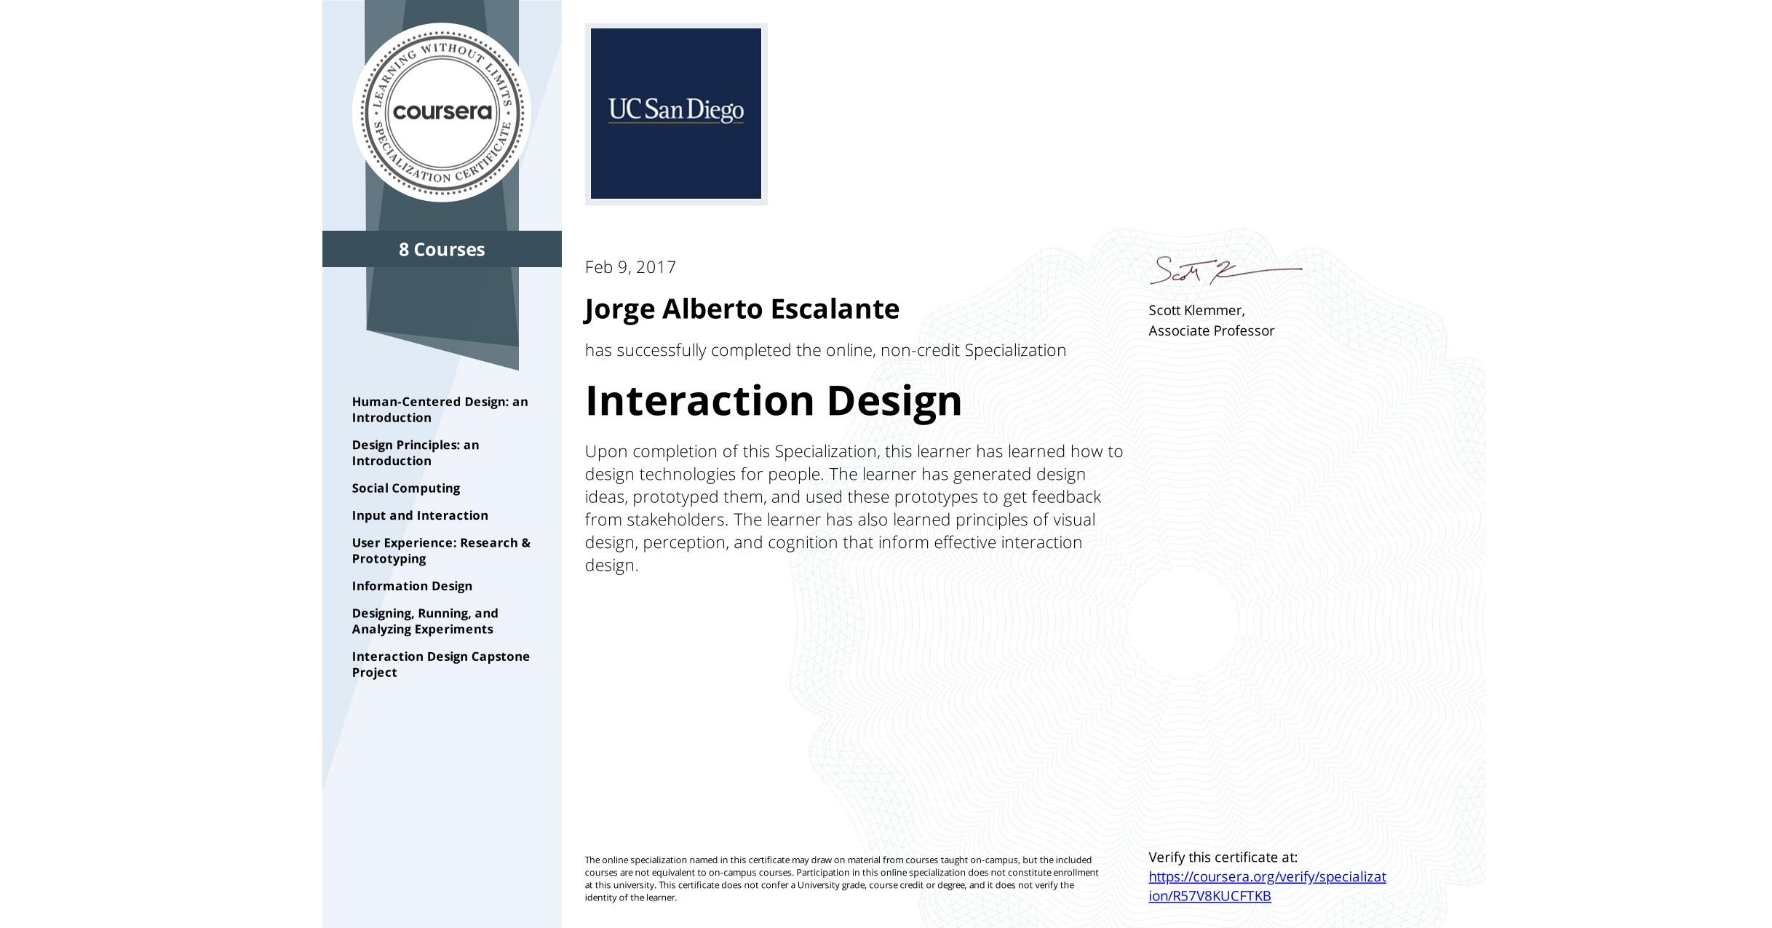 View certificate for Jorge Alberto Escalante, Interaction Design, offered through Coursera. Upon completion of this Specialization, this learner has learned how to design technologies for people. The learner has generated design ideas, prototyped them, and used these prototypes to get feedback from stakeholders. The learner has also learned principles of visual design, perception, and cognition that inform effective interaction design.